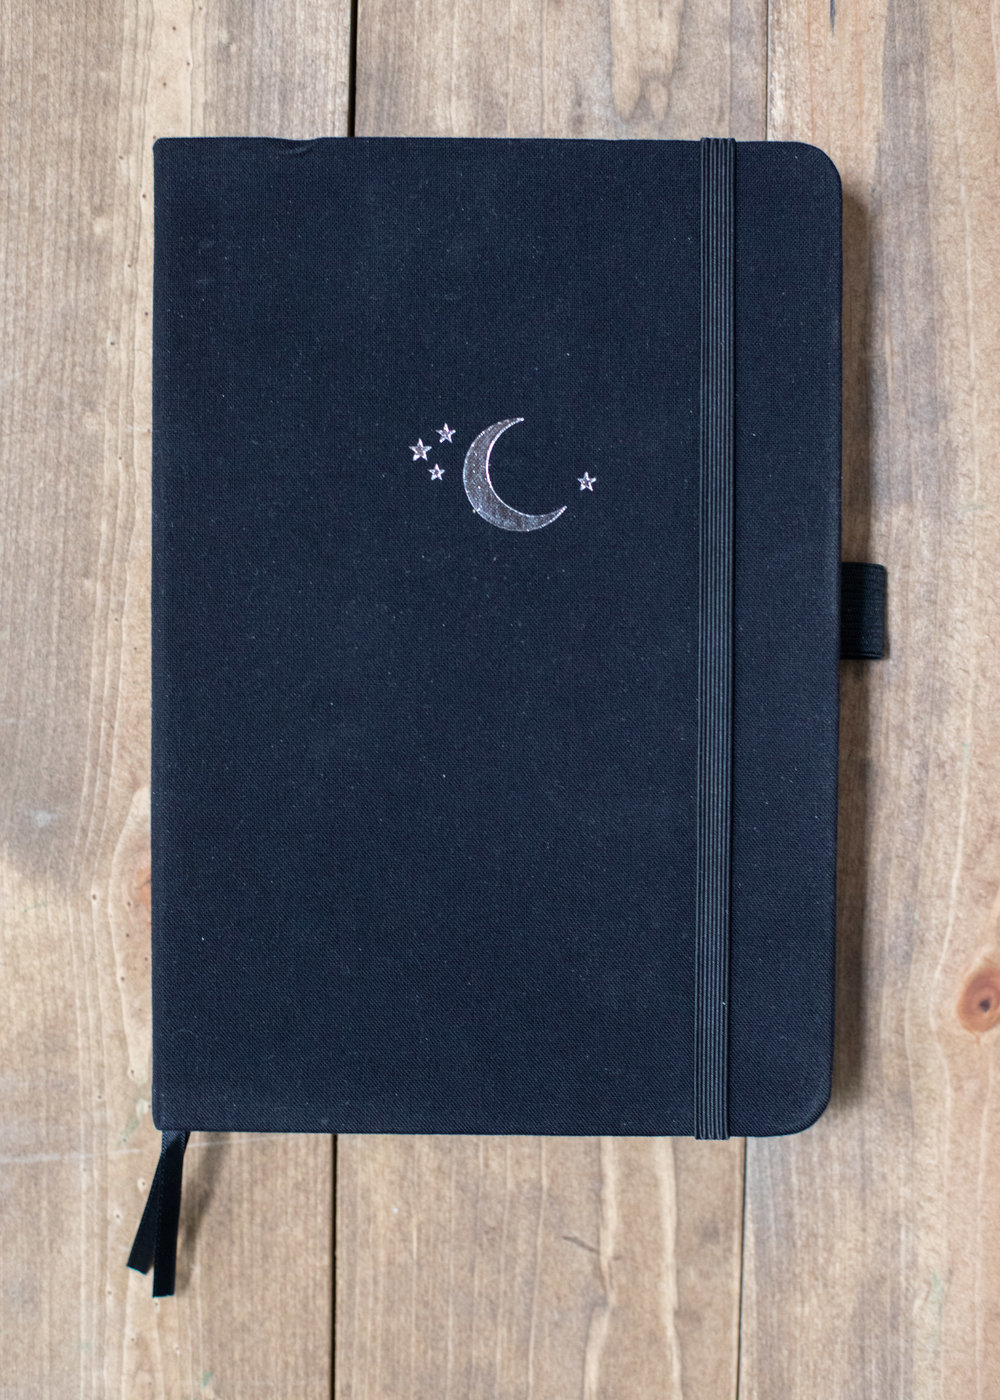 "The details: - The notebook measures 5.75″ x 8.25"" and features silver gilded edges, a black linen cover, elastic closure, pen loop and two bookmarks."